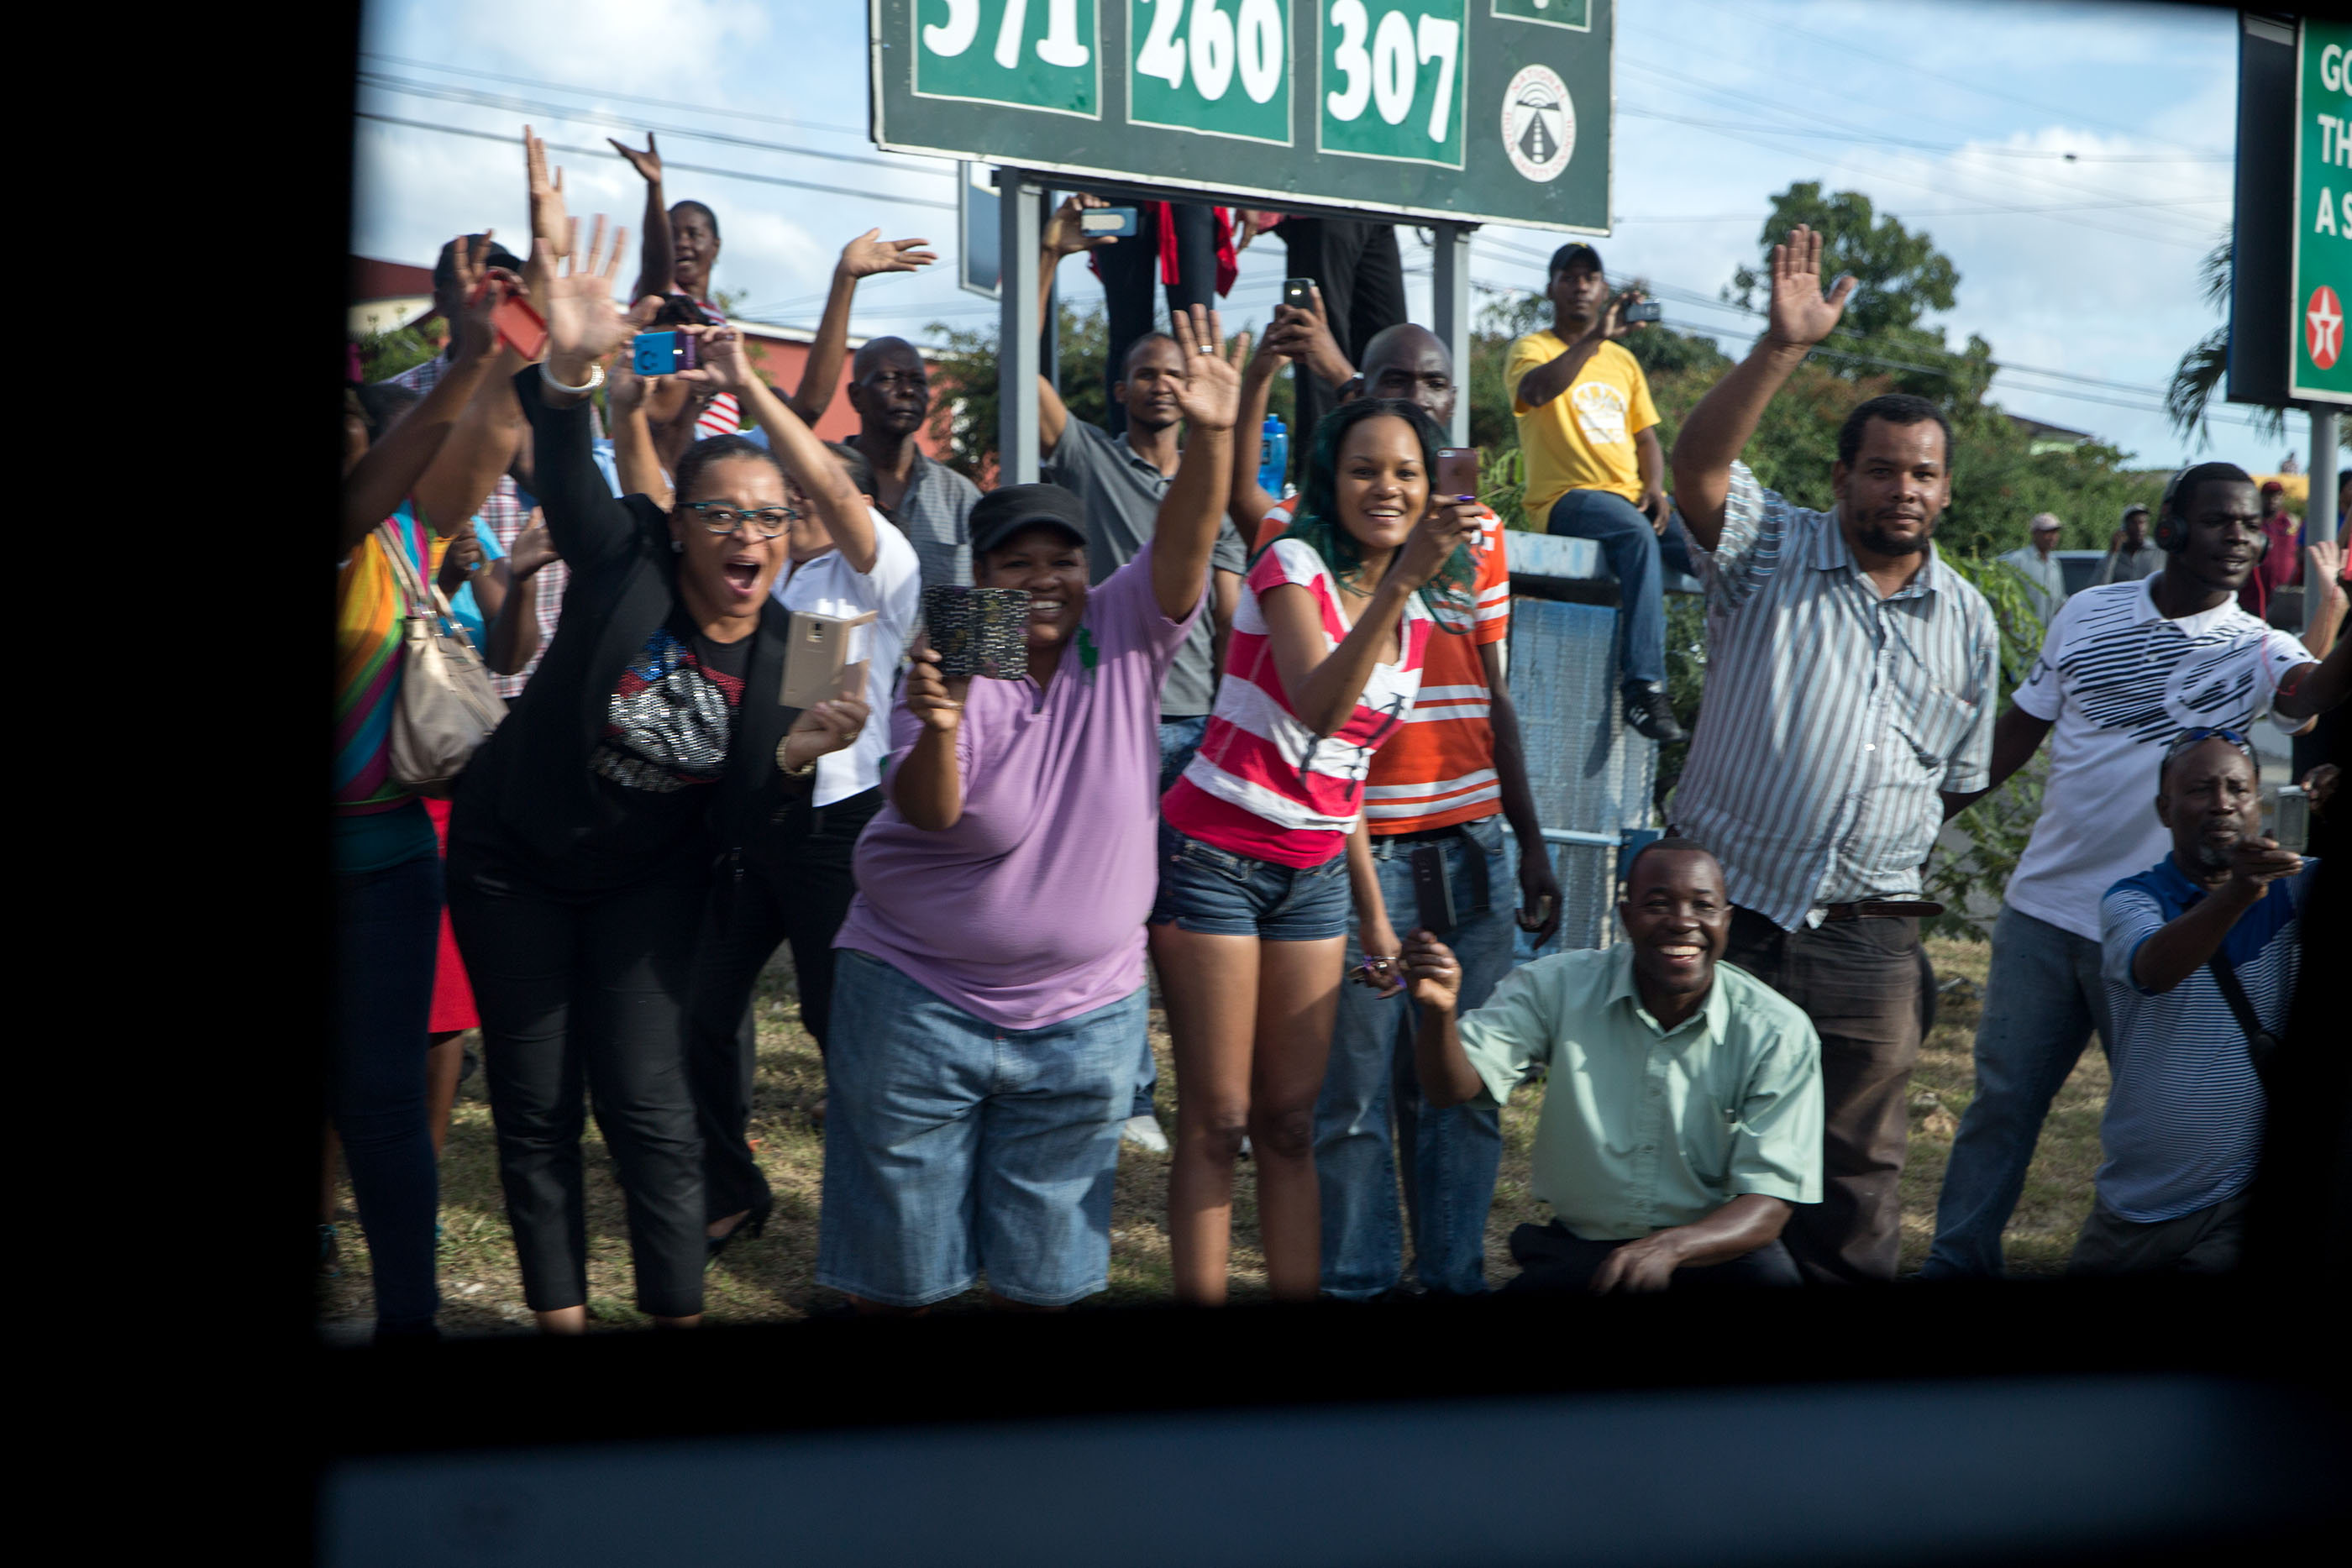 Jamaicans wave at the passing motorcade. (Official White House Photo by Pete Souza)